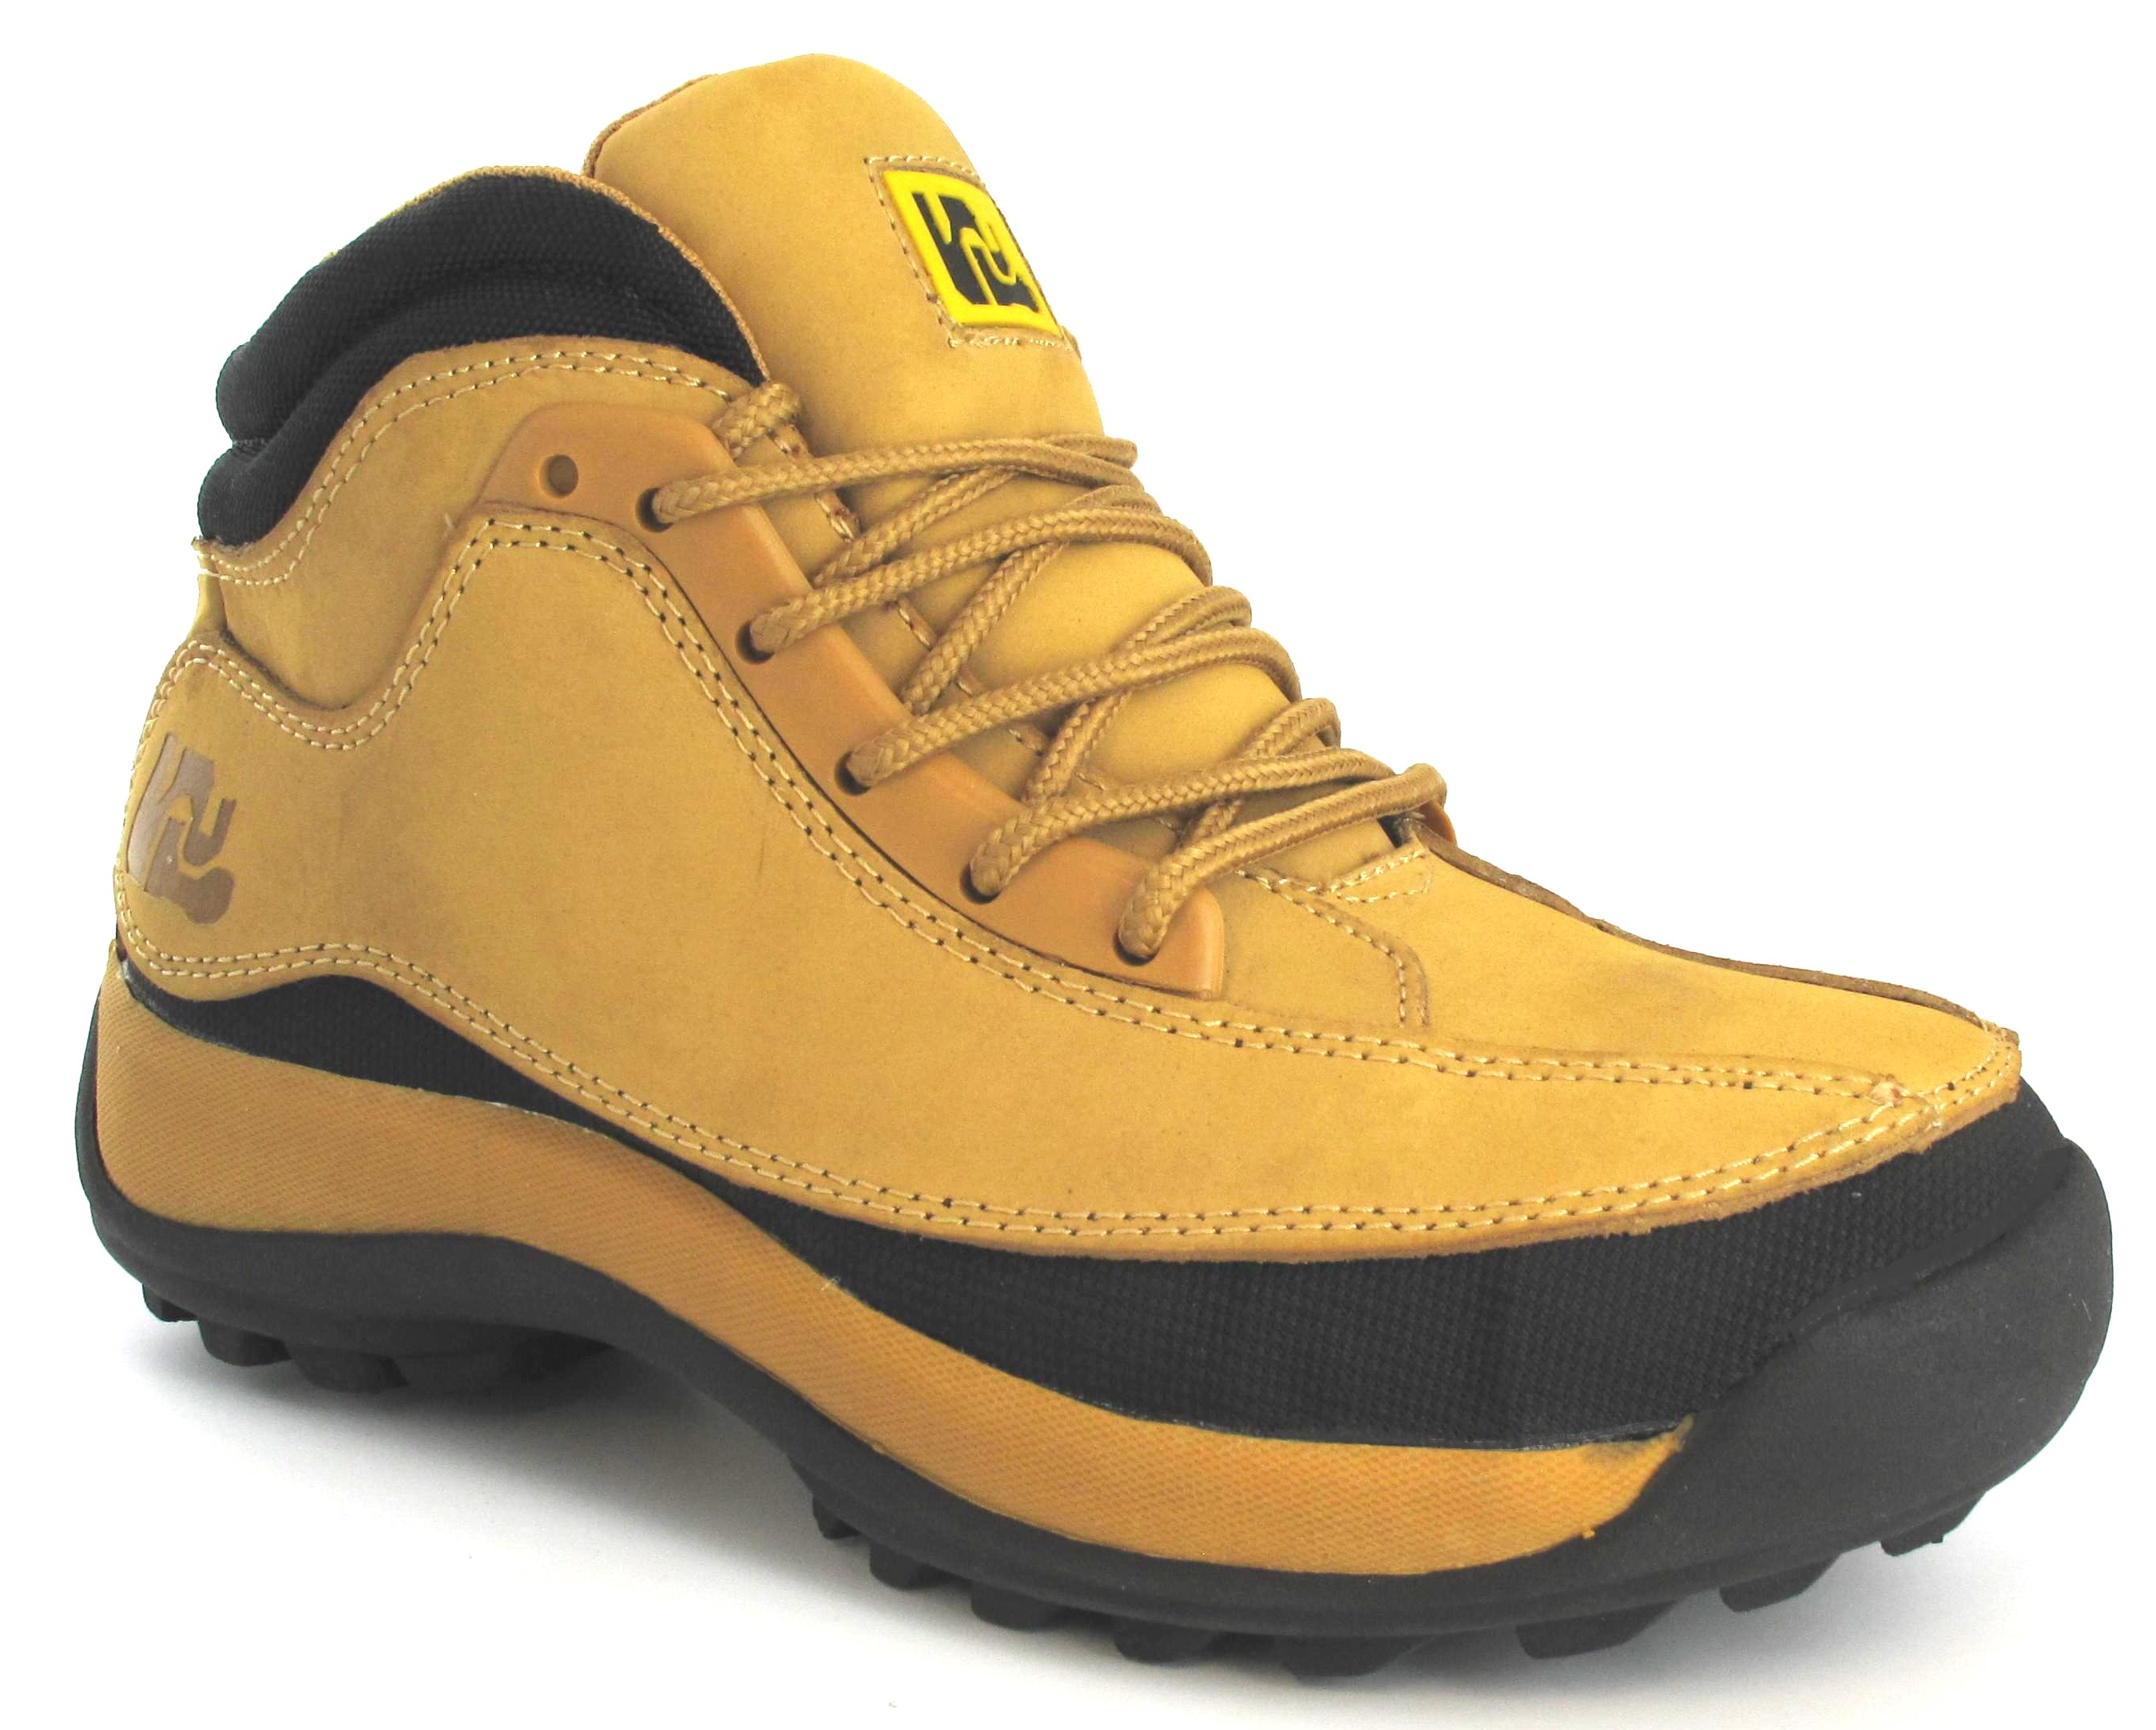 NEW MENS LIGHTWEIGHT SAFETY TRAINERS STEEL TOE CAP HONEY WORK ...